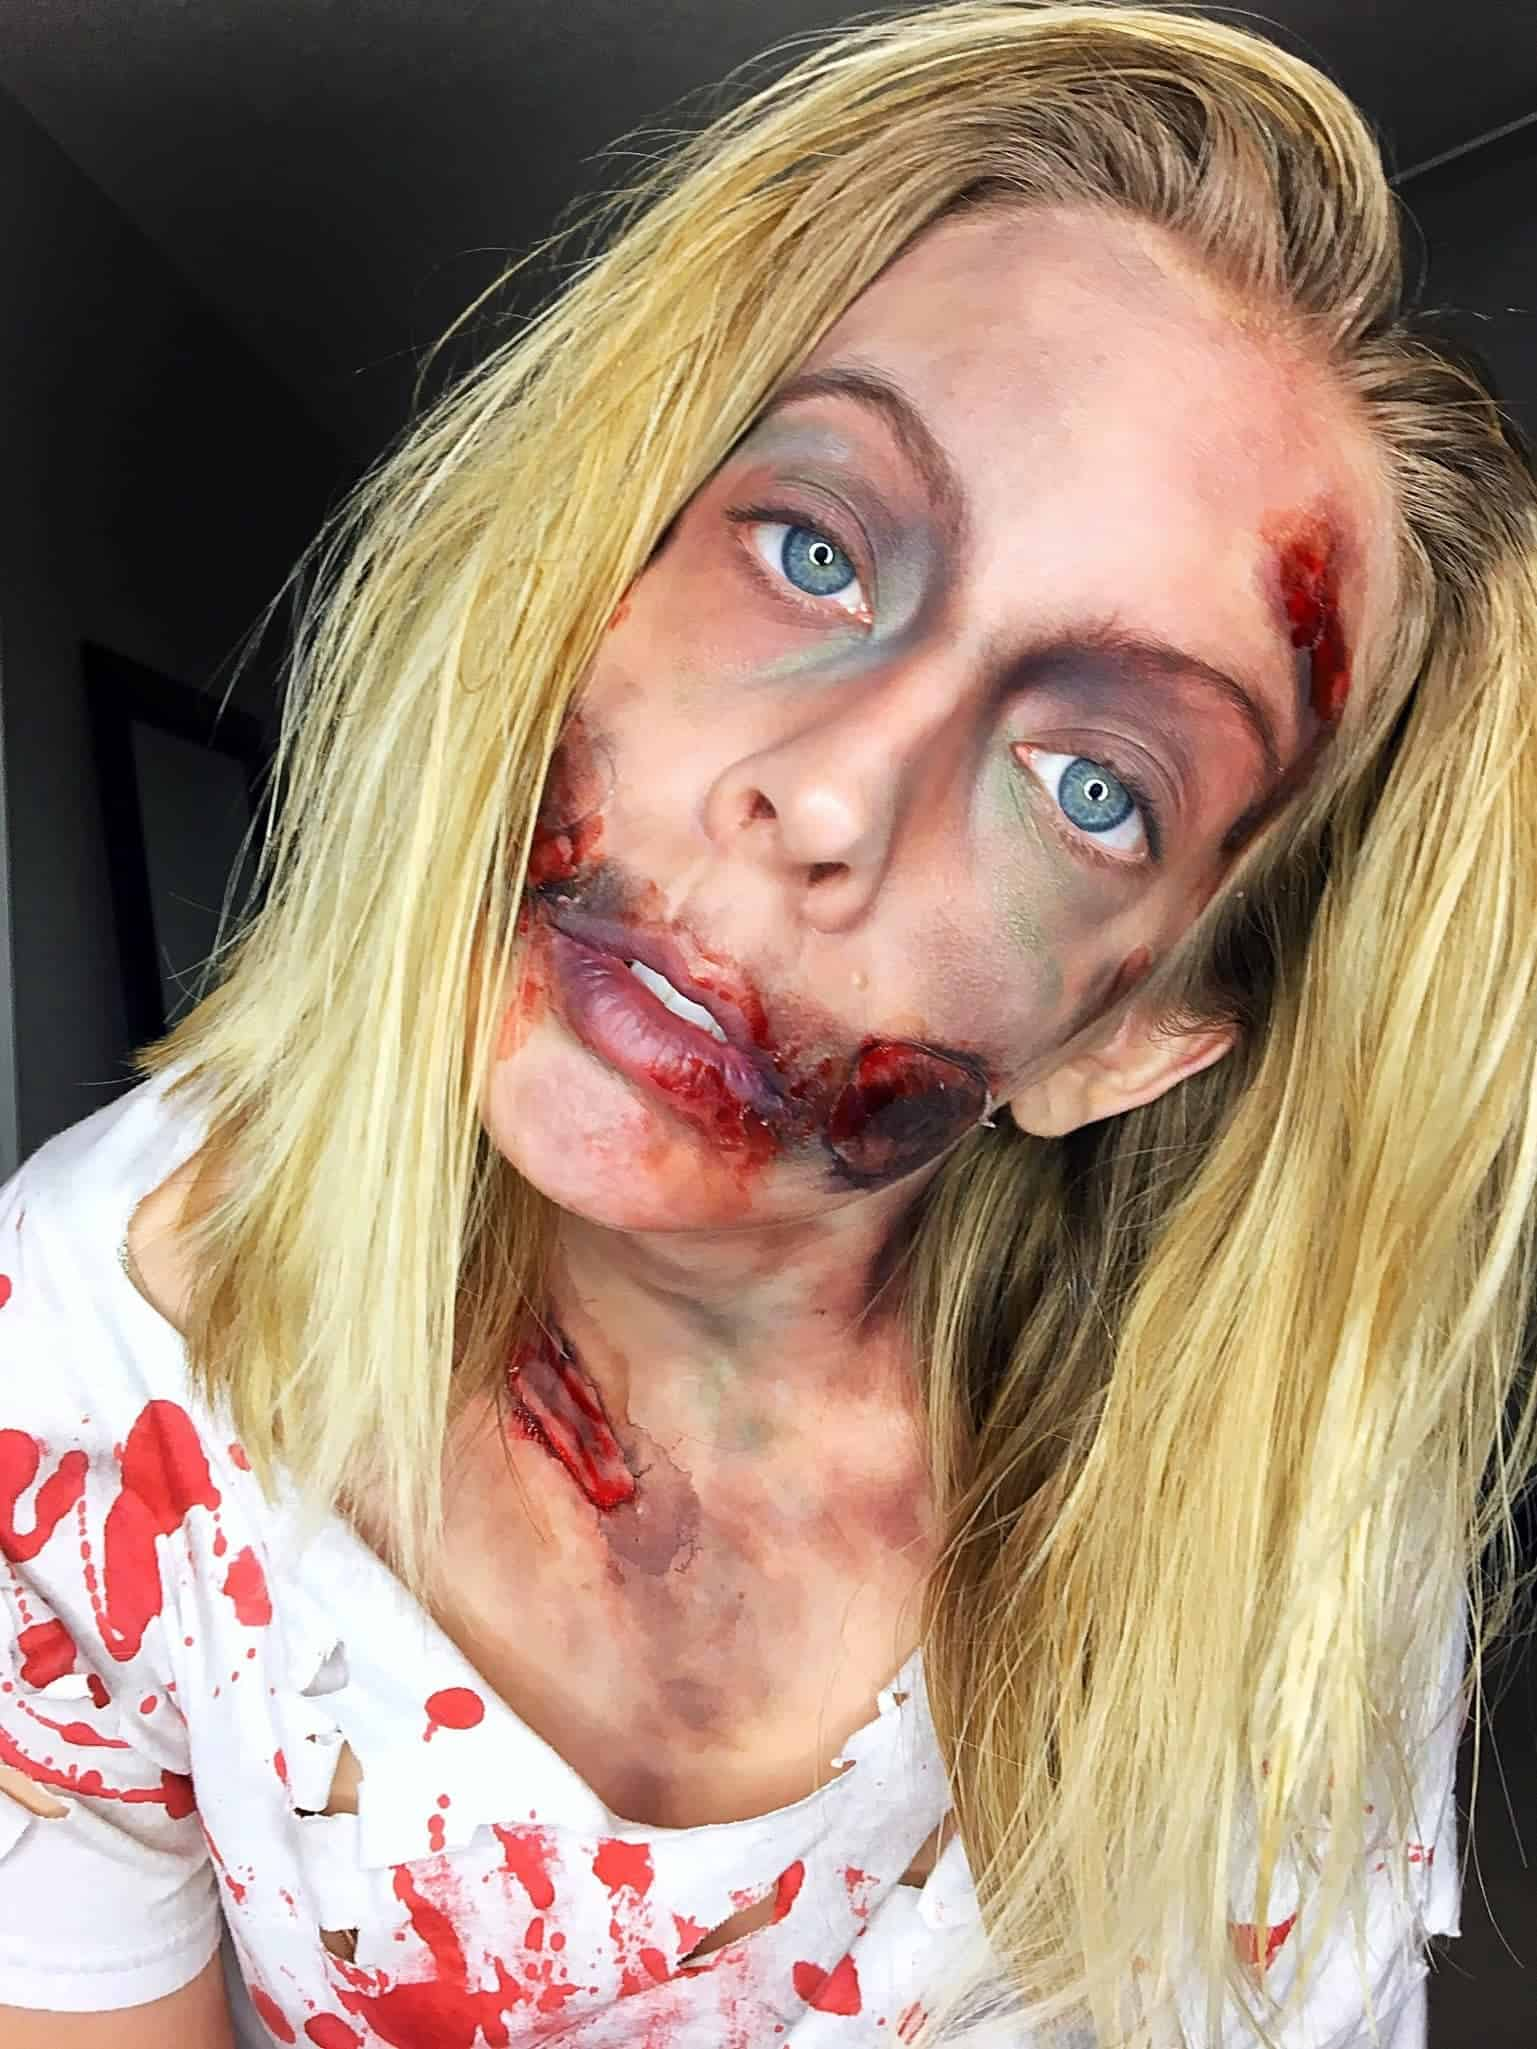 Looking for an awesome last minute DIY halloween costume idea? Check out this easy zombie makeup and zombie costume tutorial where I show you step-by-step how to dress up the whole family like zombies! #halloween #halloweenmakeup #halloweencostume #zombie